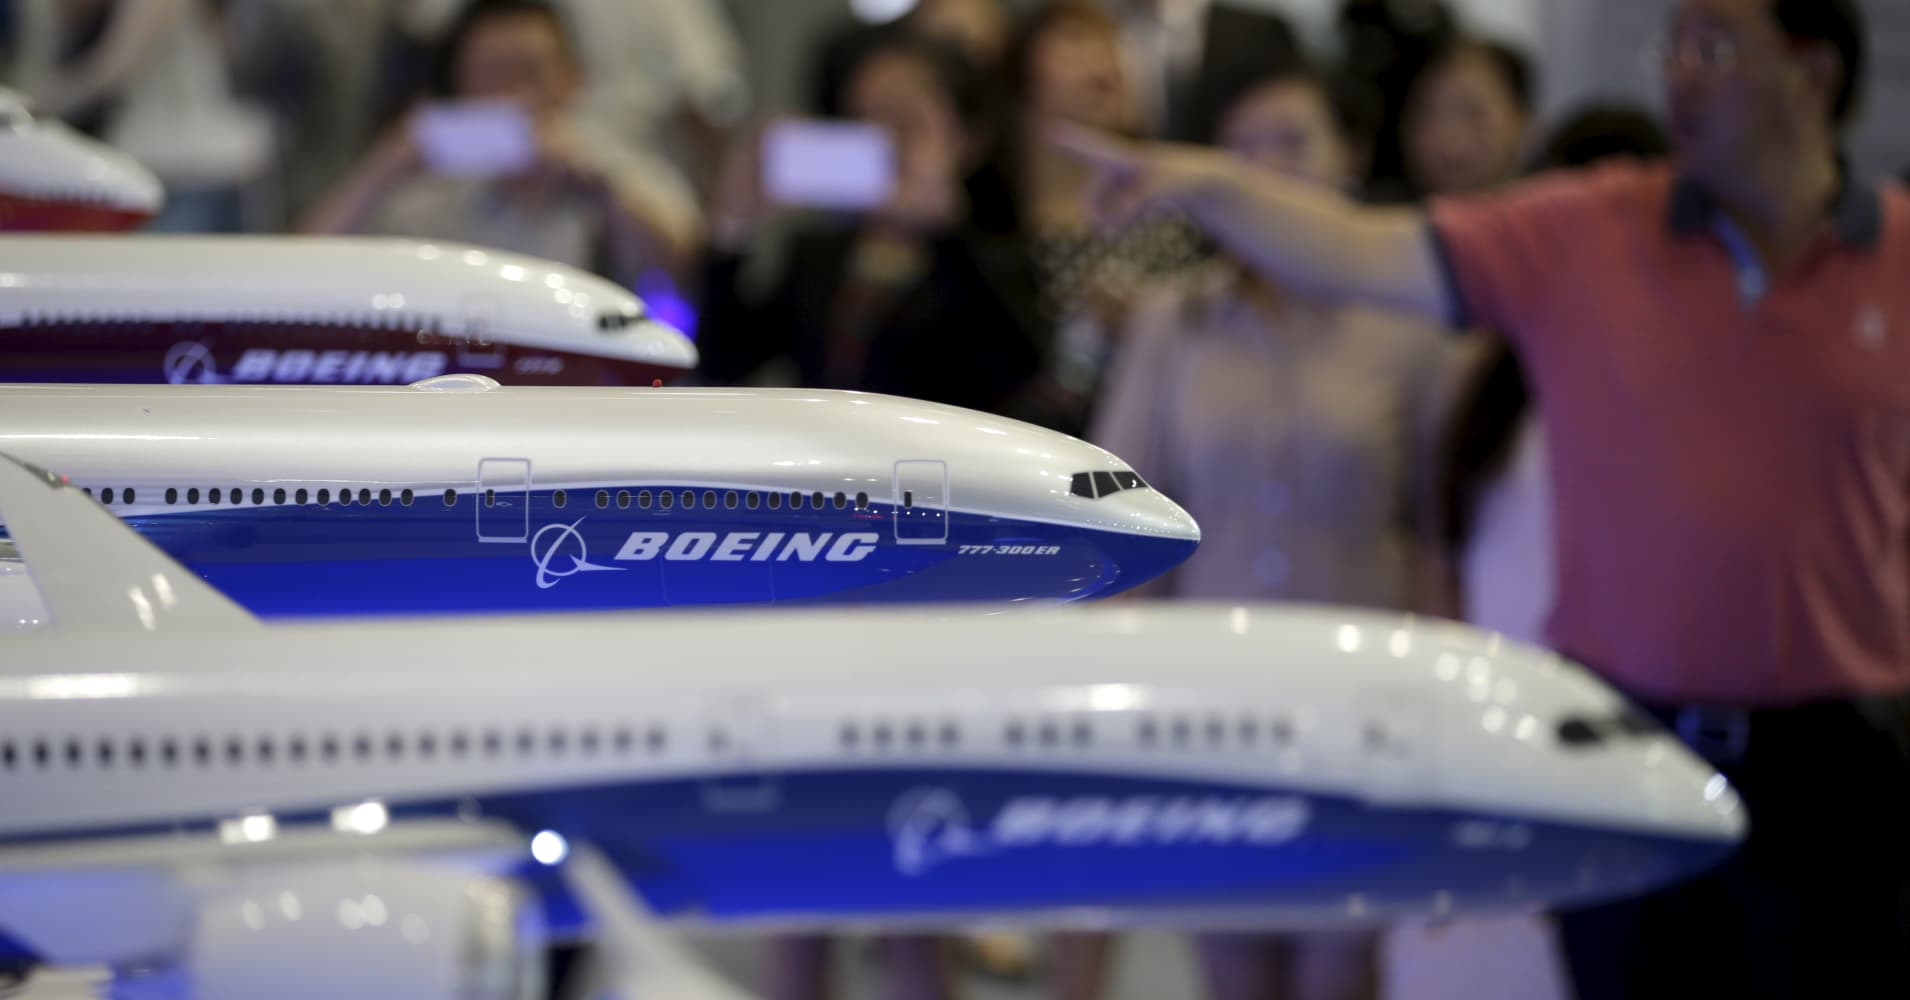 If you invested $1,000 in Boeing 10 years ago, here's how much you'd have now